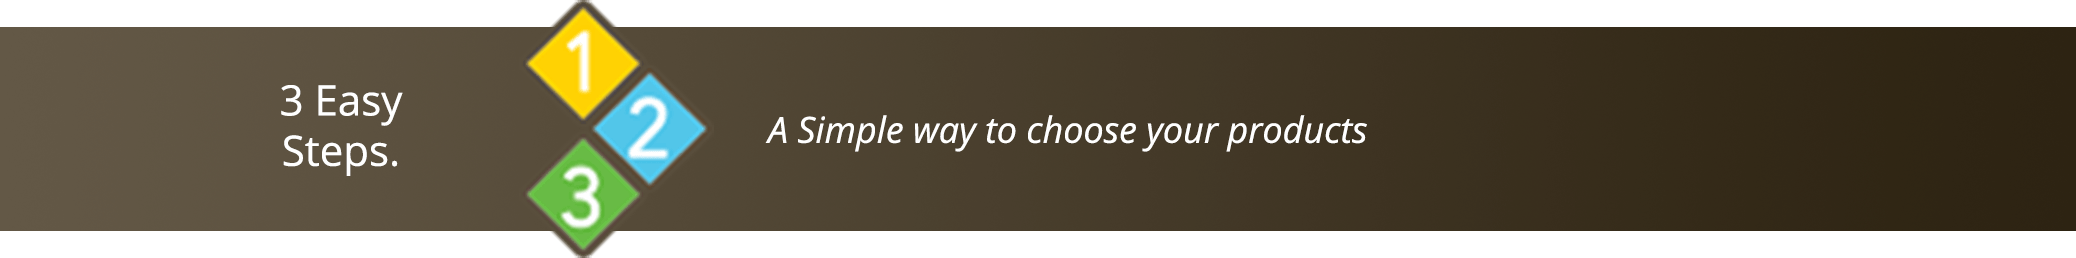 3 Easy Steps. A Simple way to choose your products.